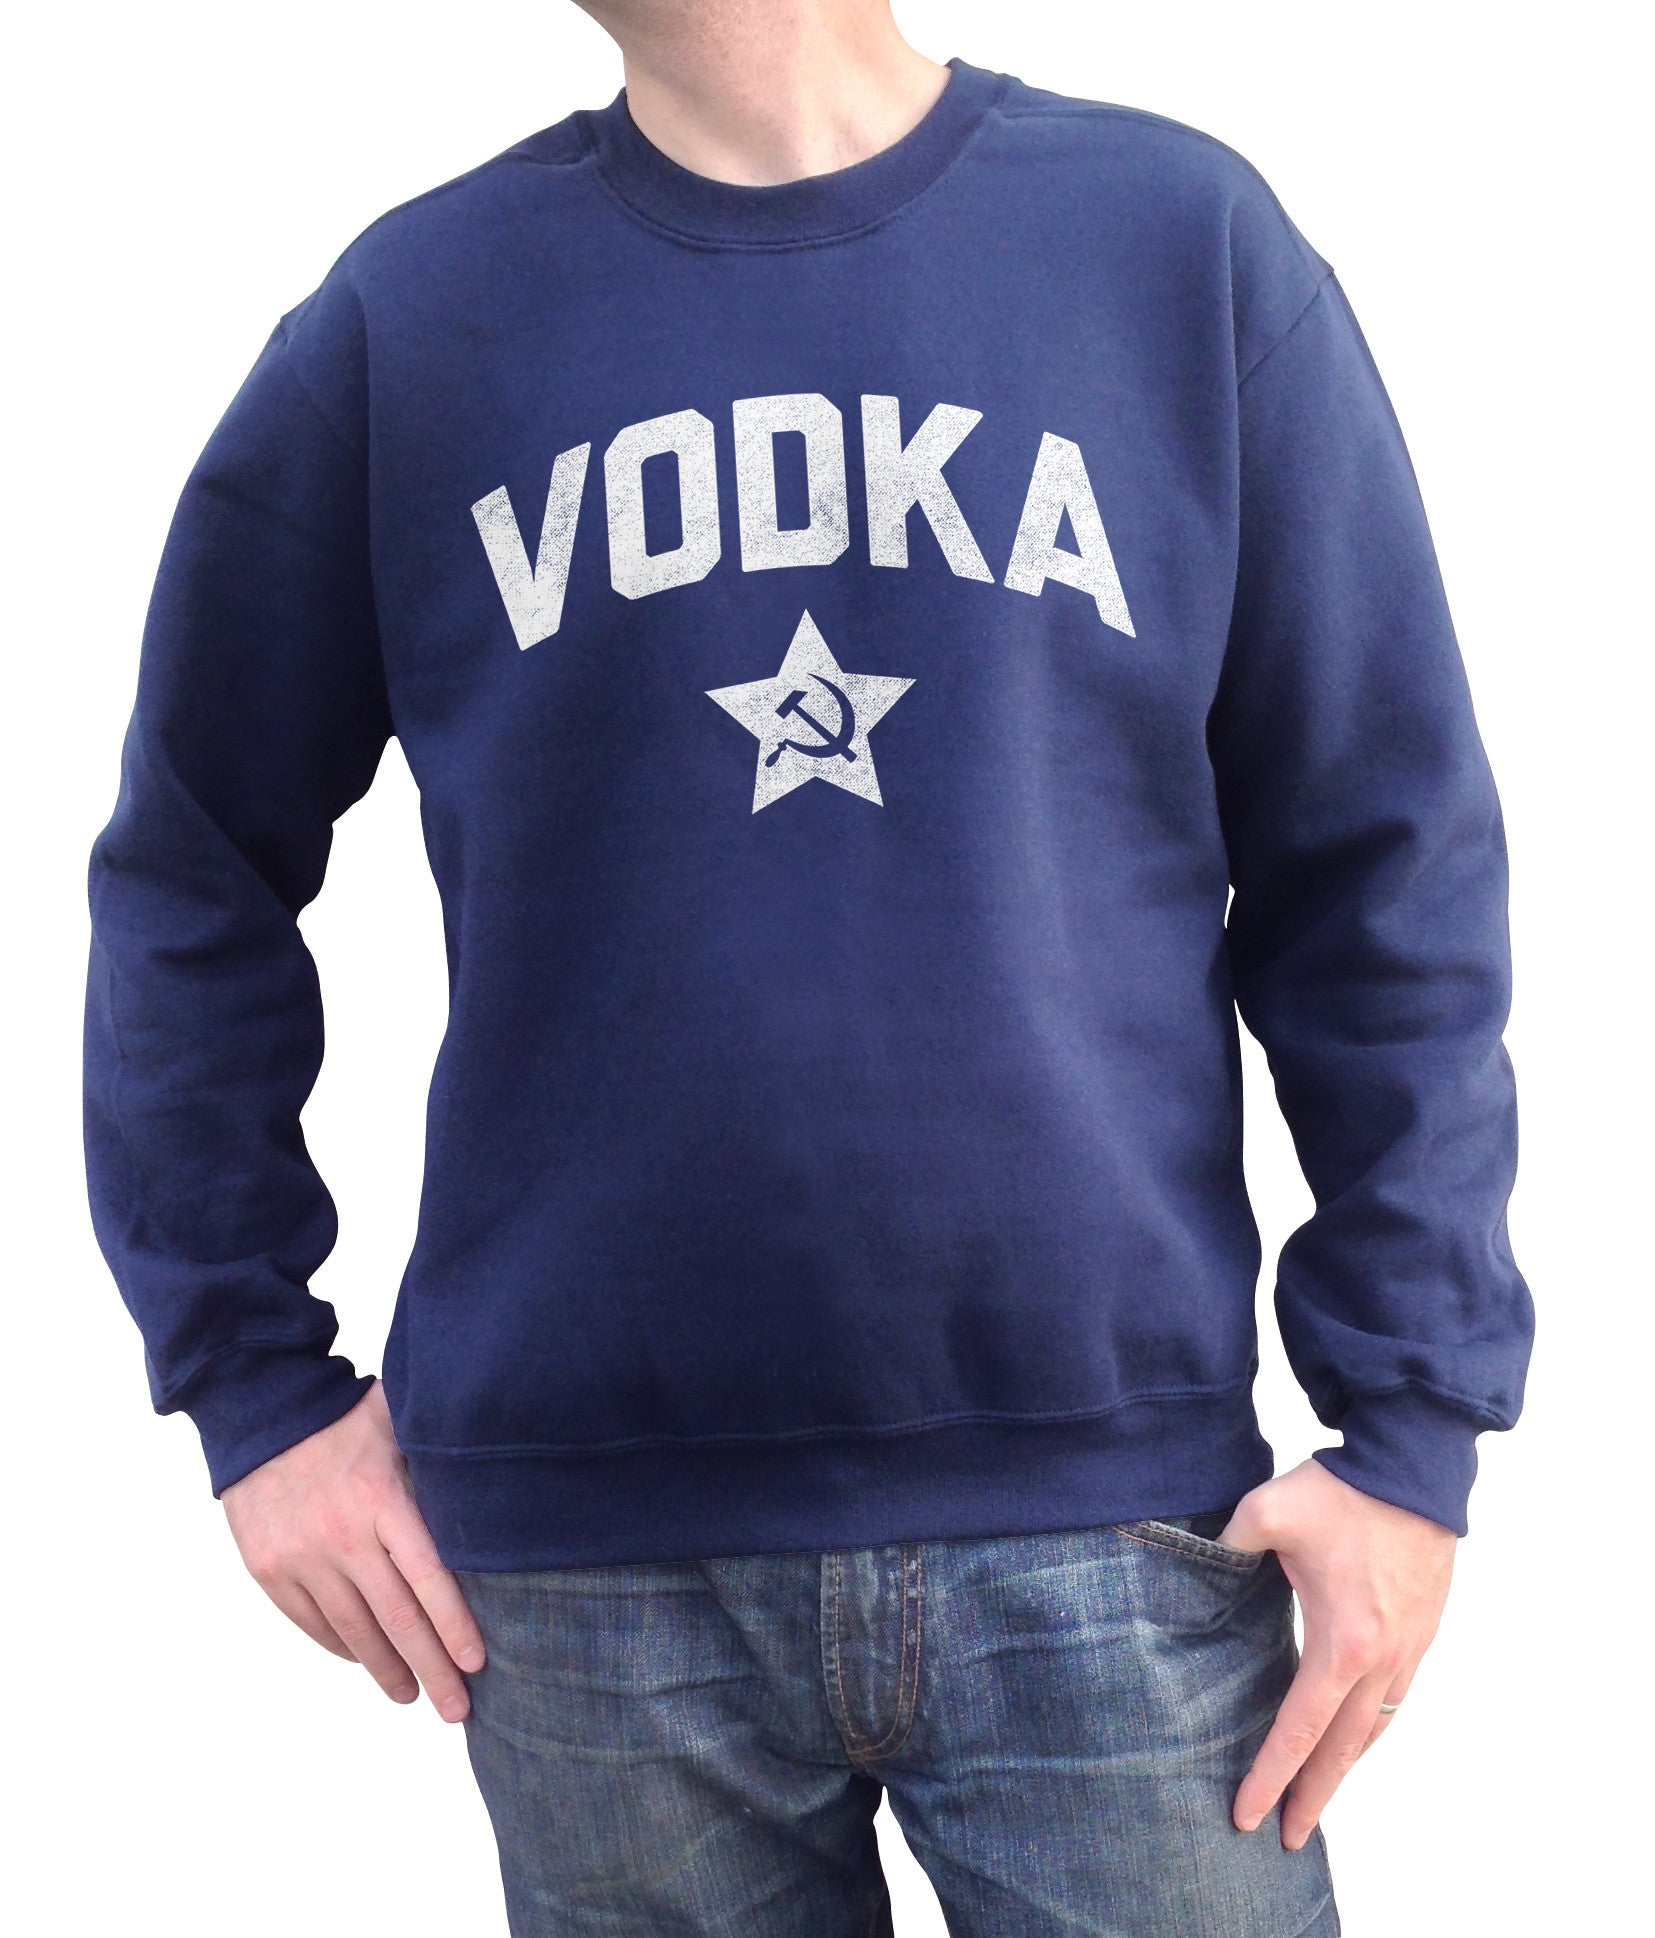 Unisex Team Vodka Sweatshirt Cool Funny Drinking